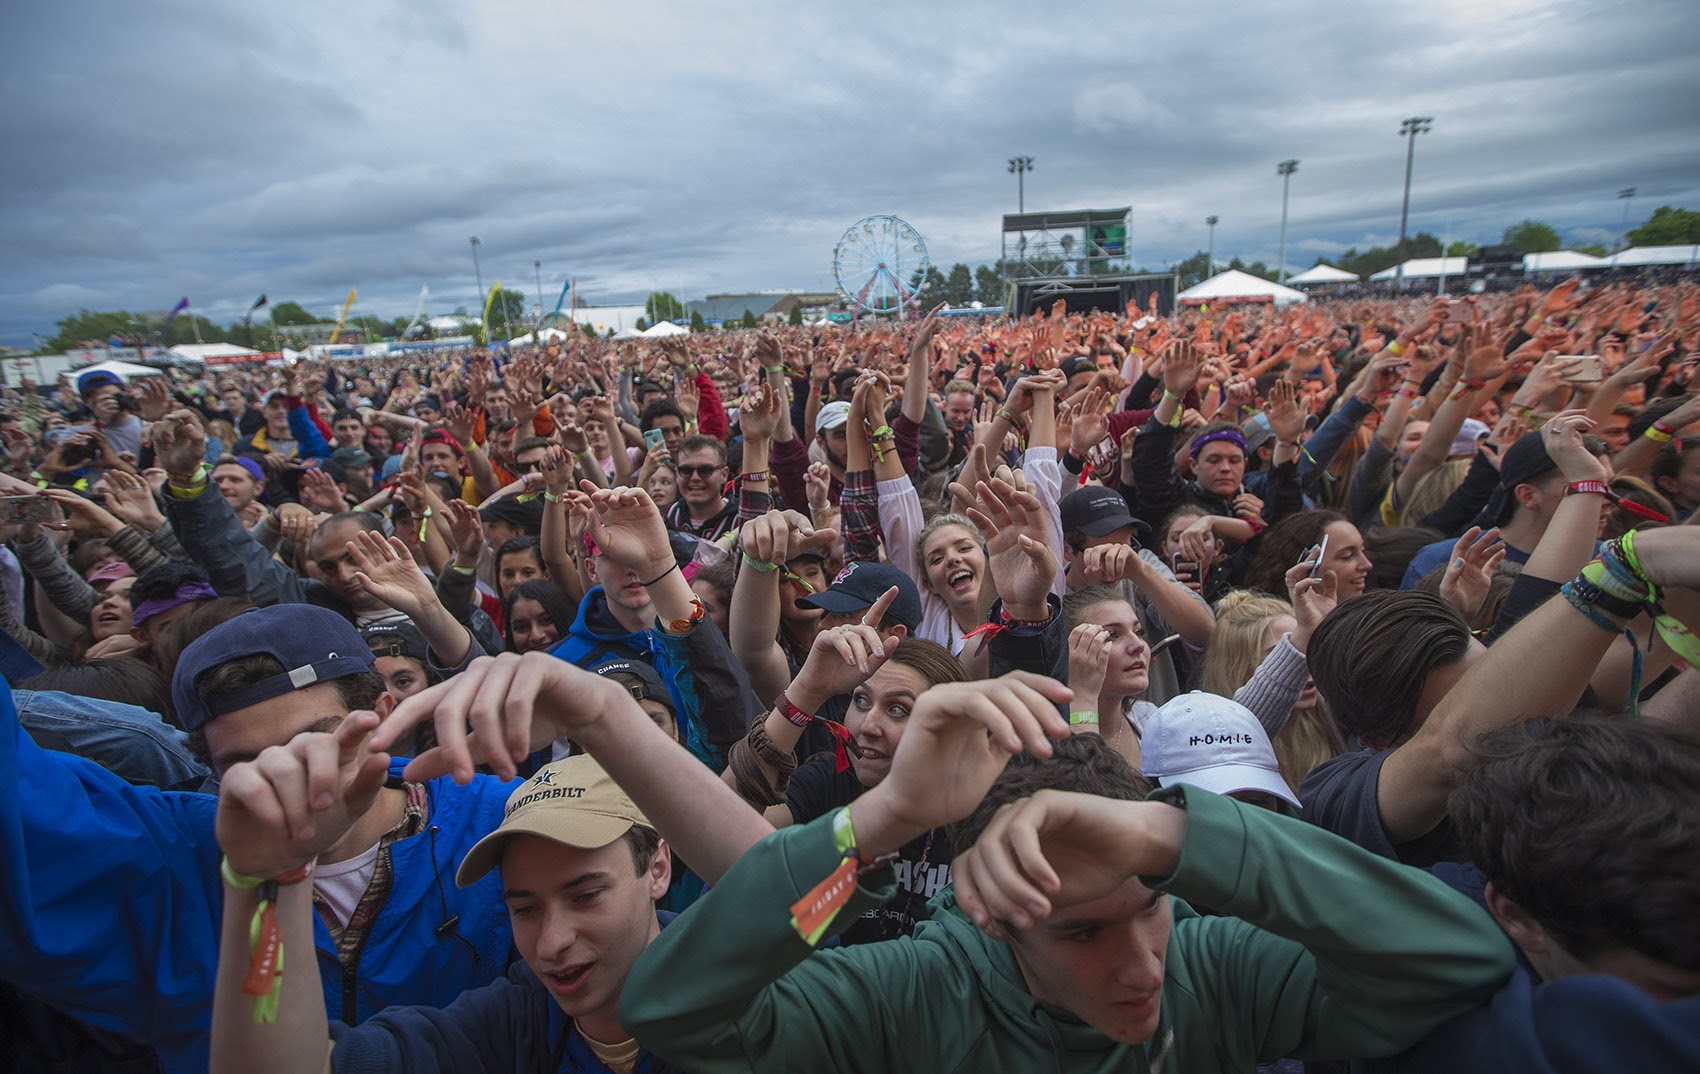 The crowd at Boston Calling Friday night with hands in the air. (Jesse Costa/WBUR)